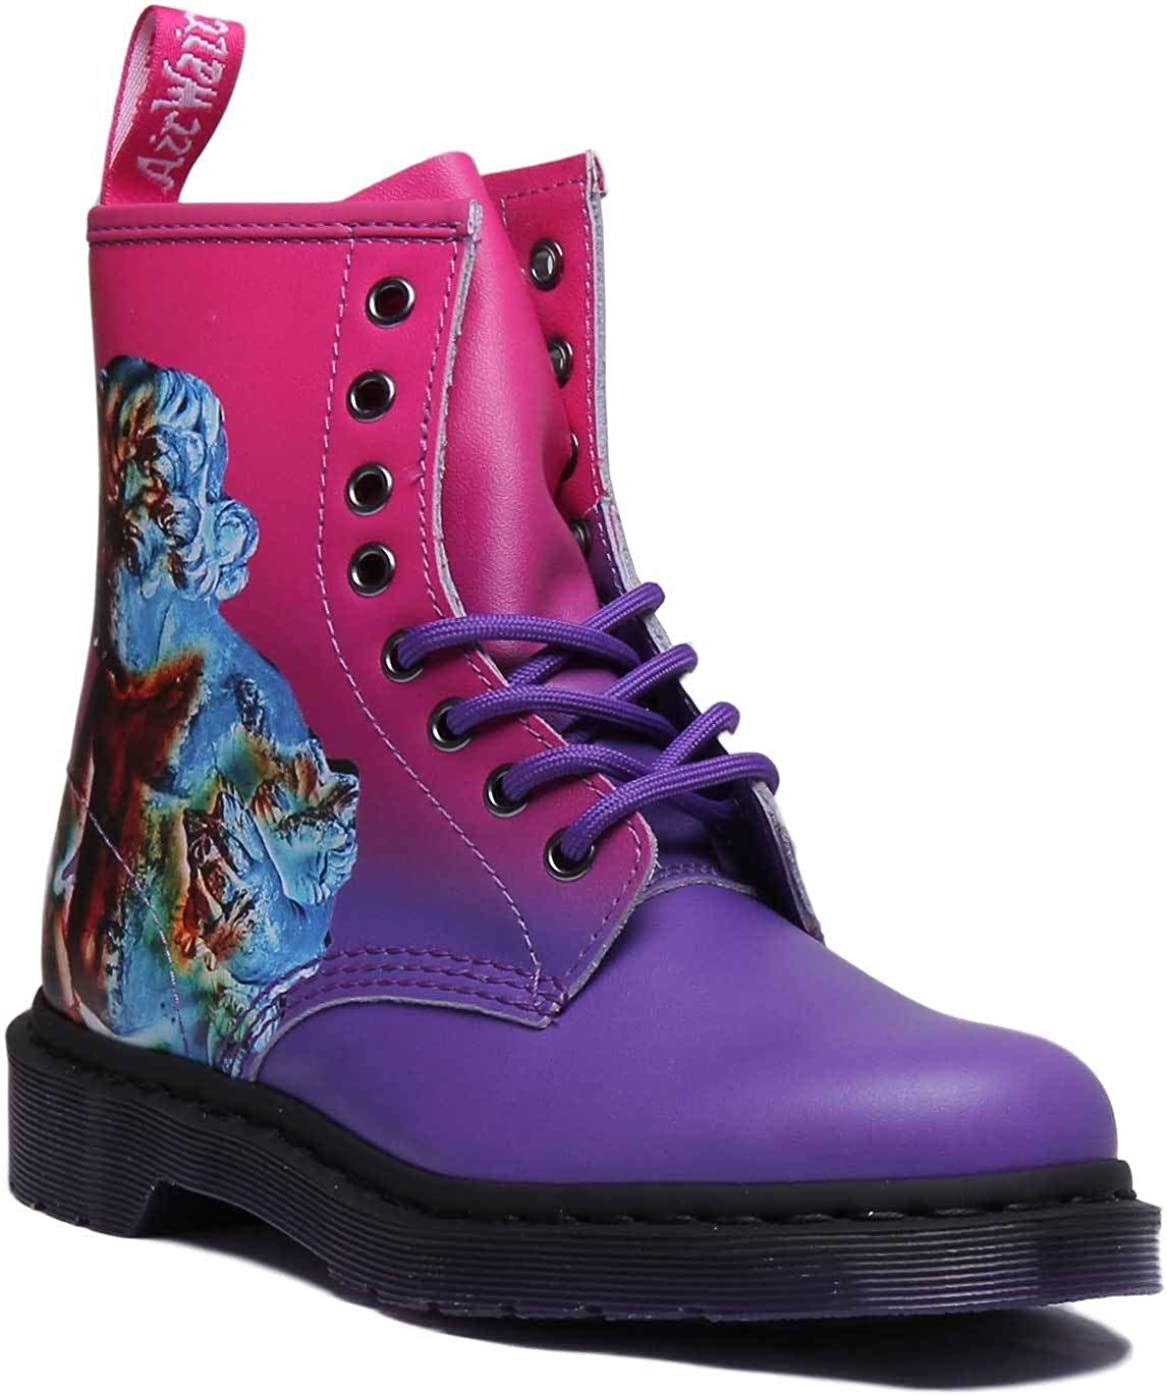 Dr. Martens 1460 Technique Bottines Rose/Violet Rose